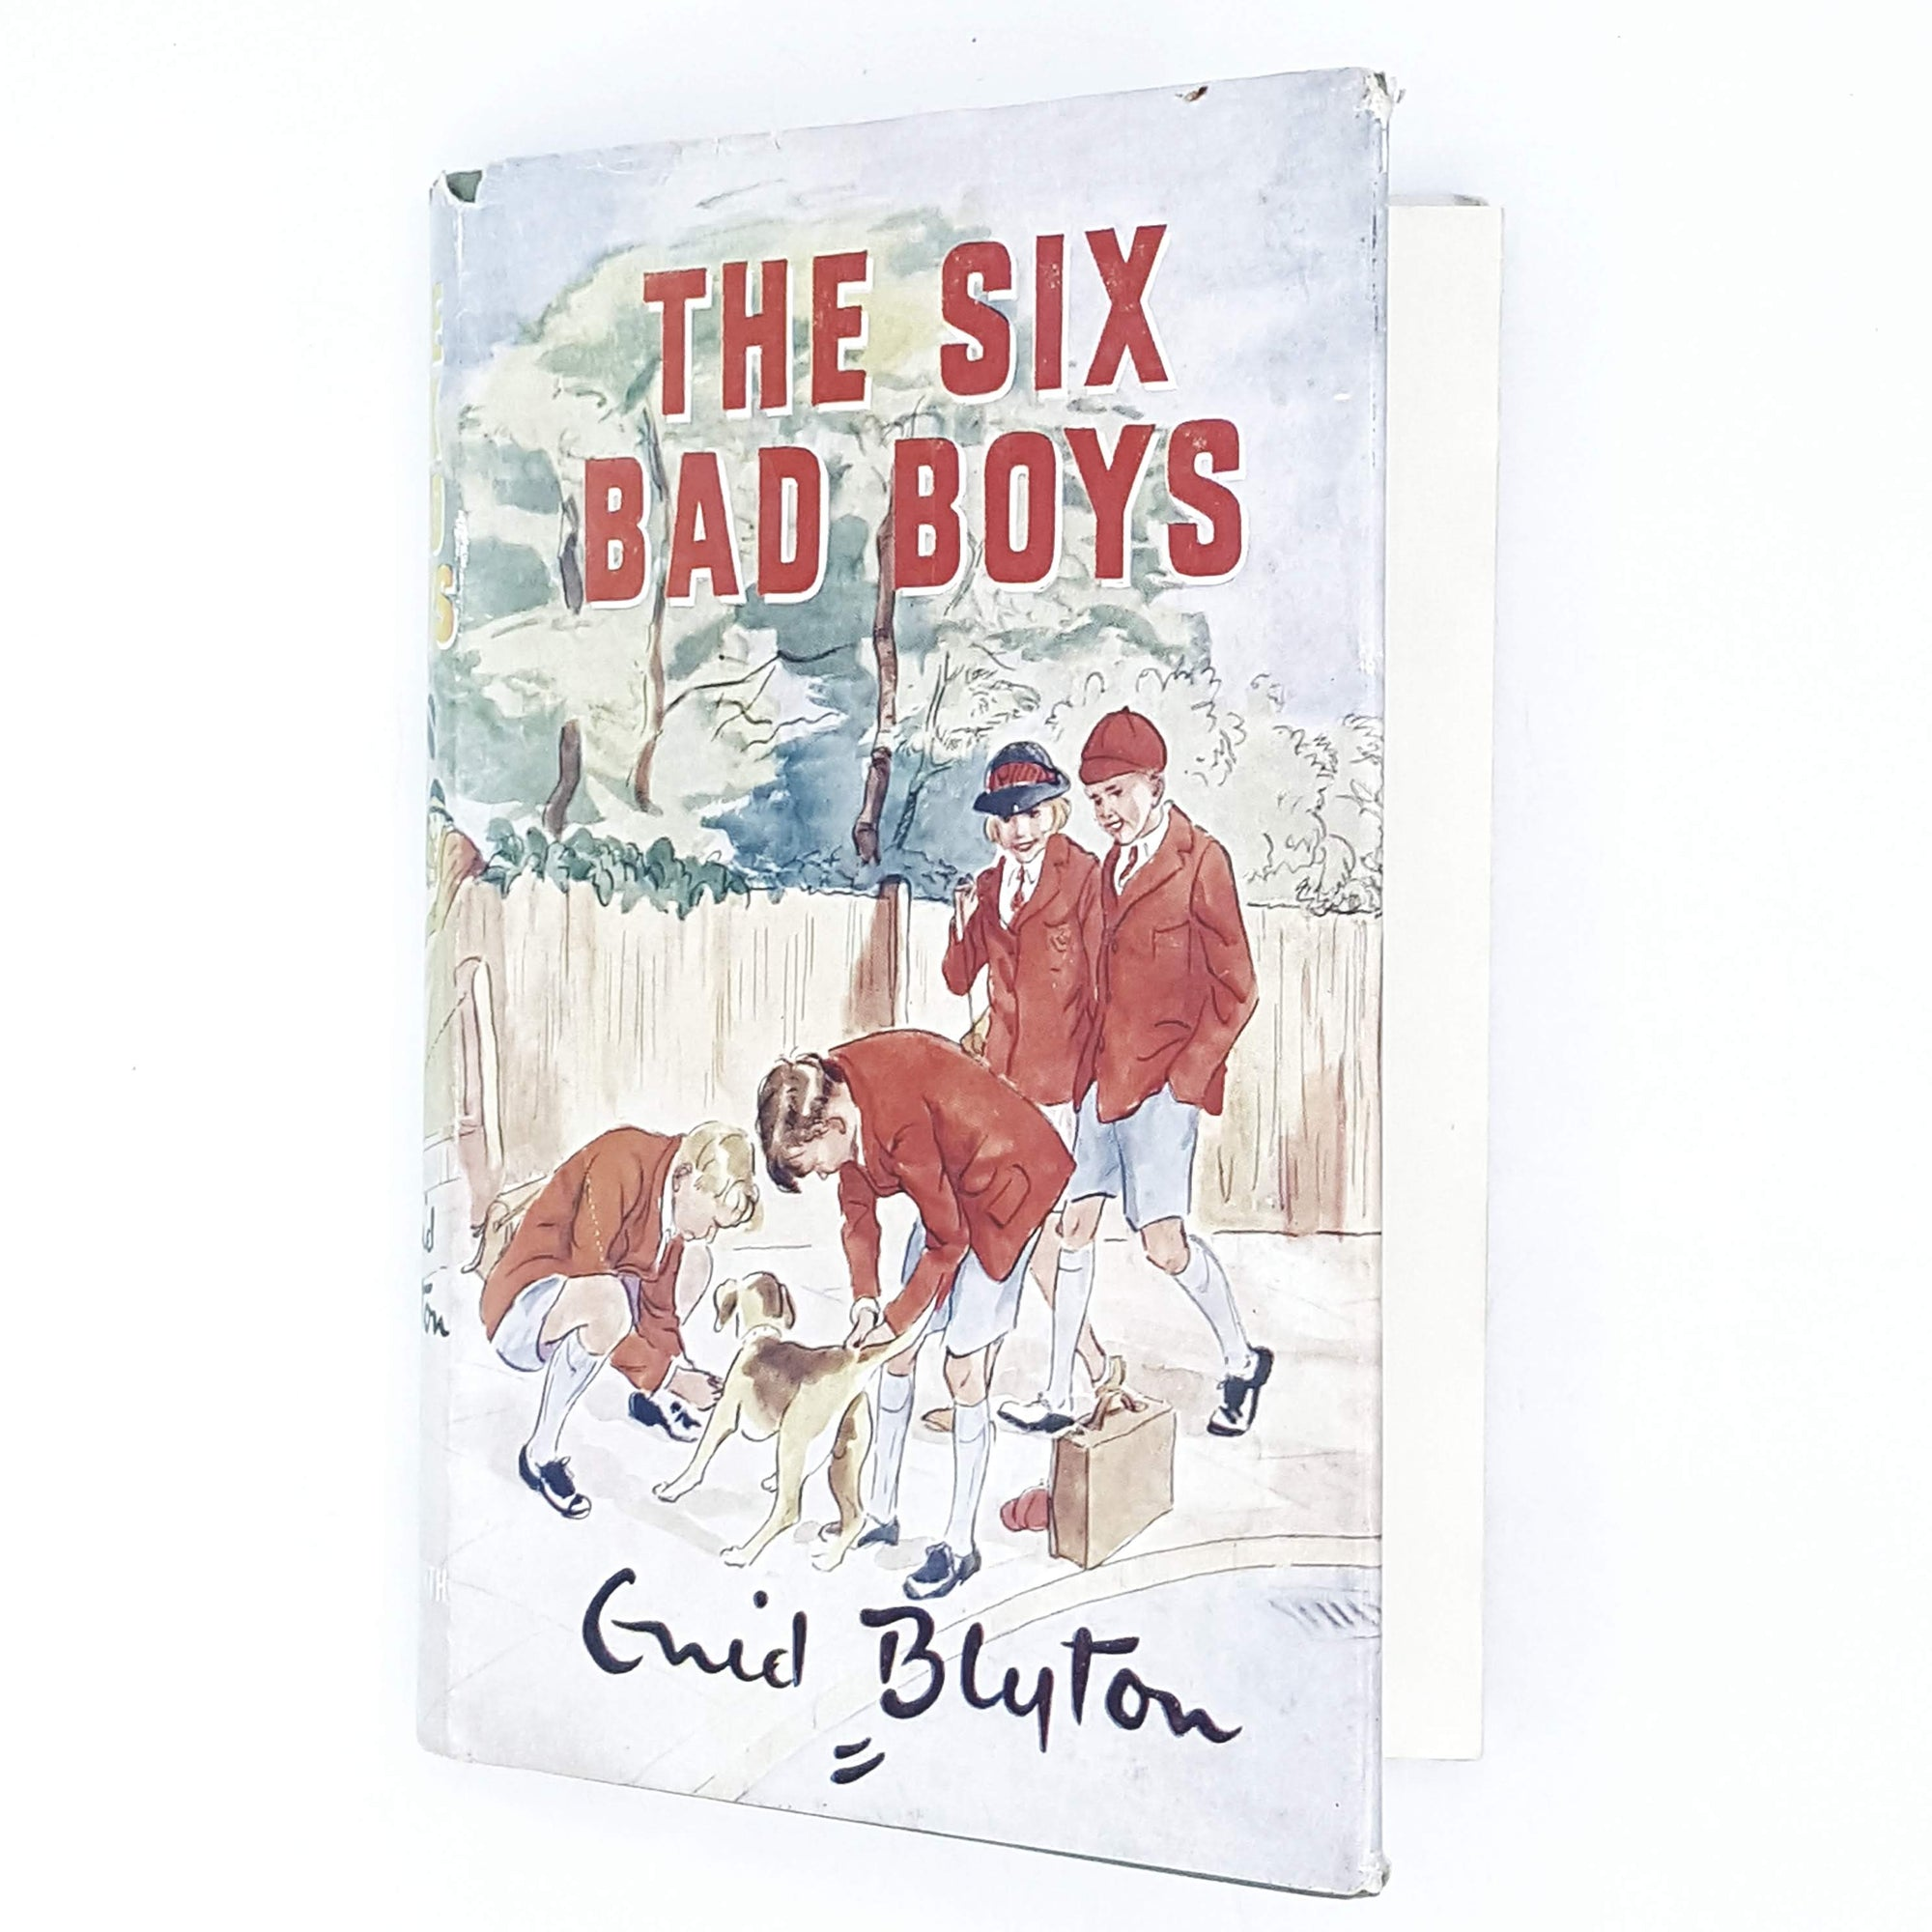 bad-boys-enid-blyton-kids-illustrated-vintage-book-country-library-book